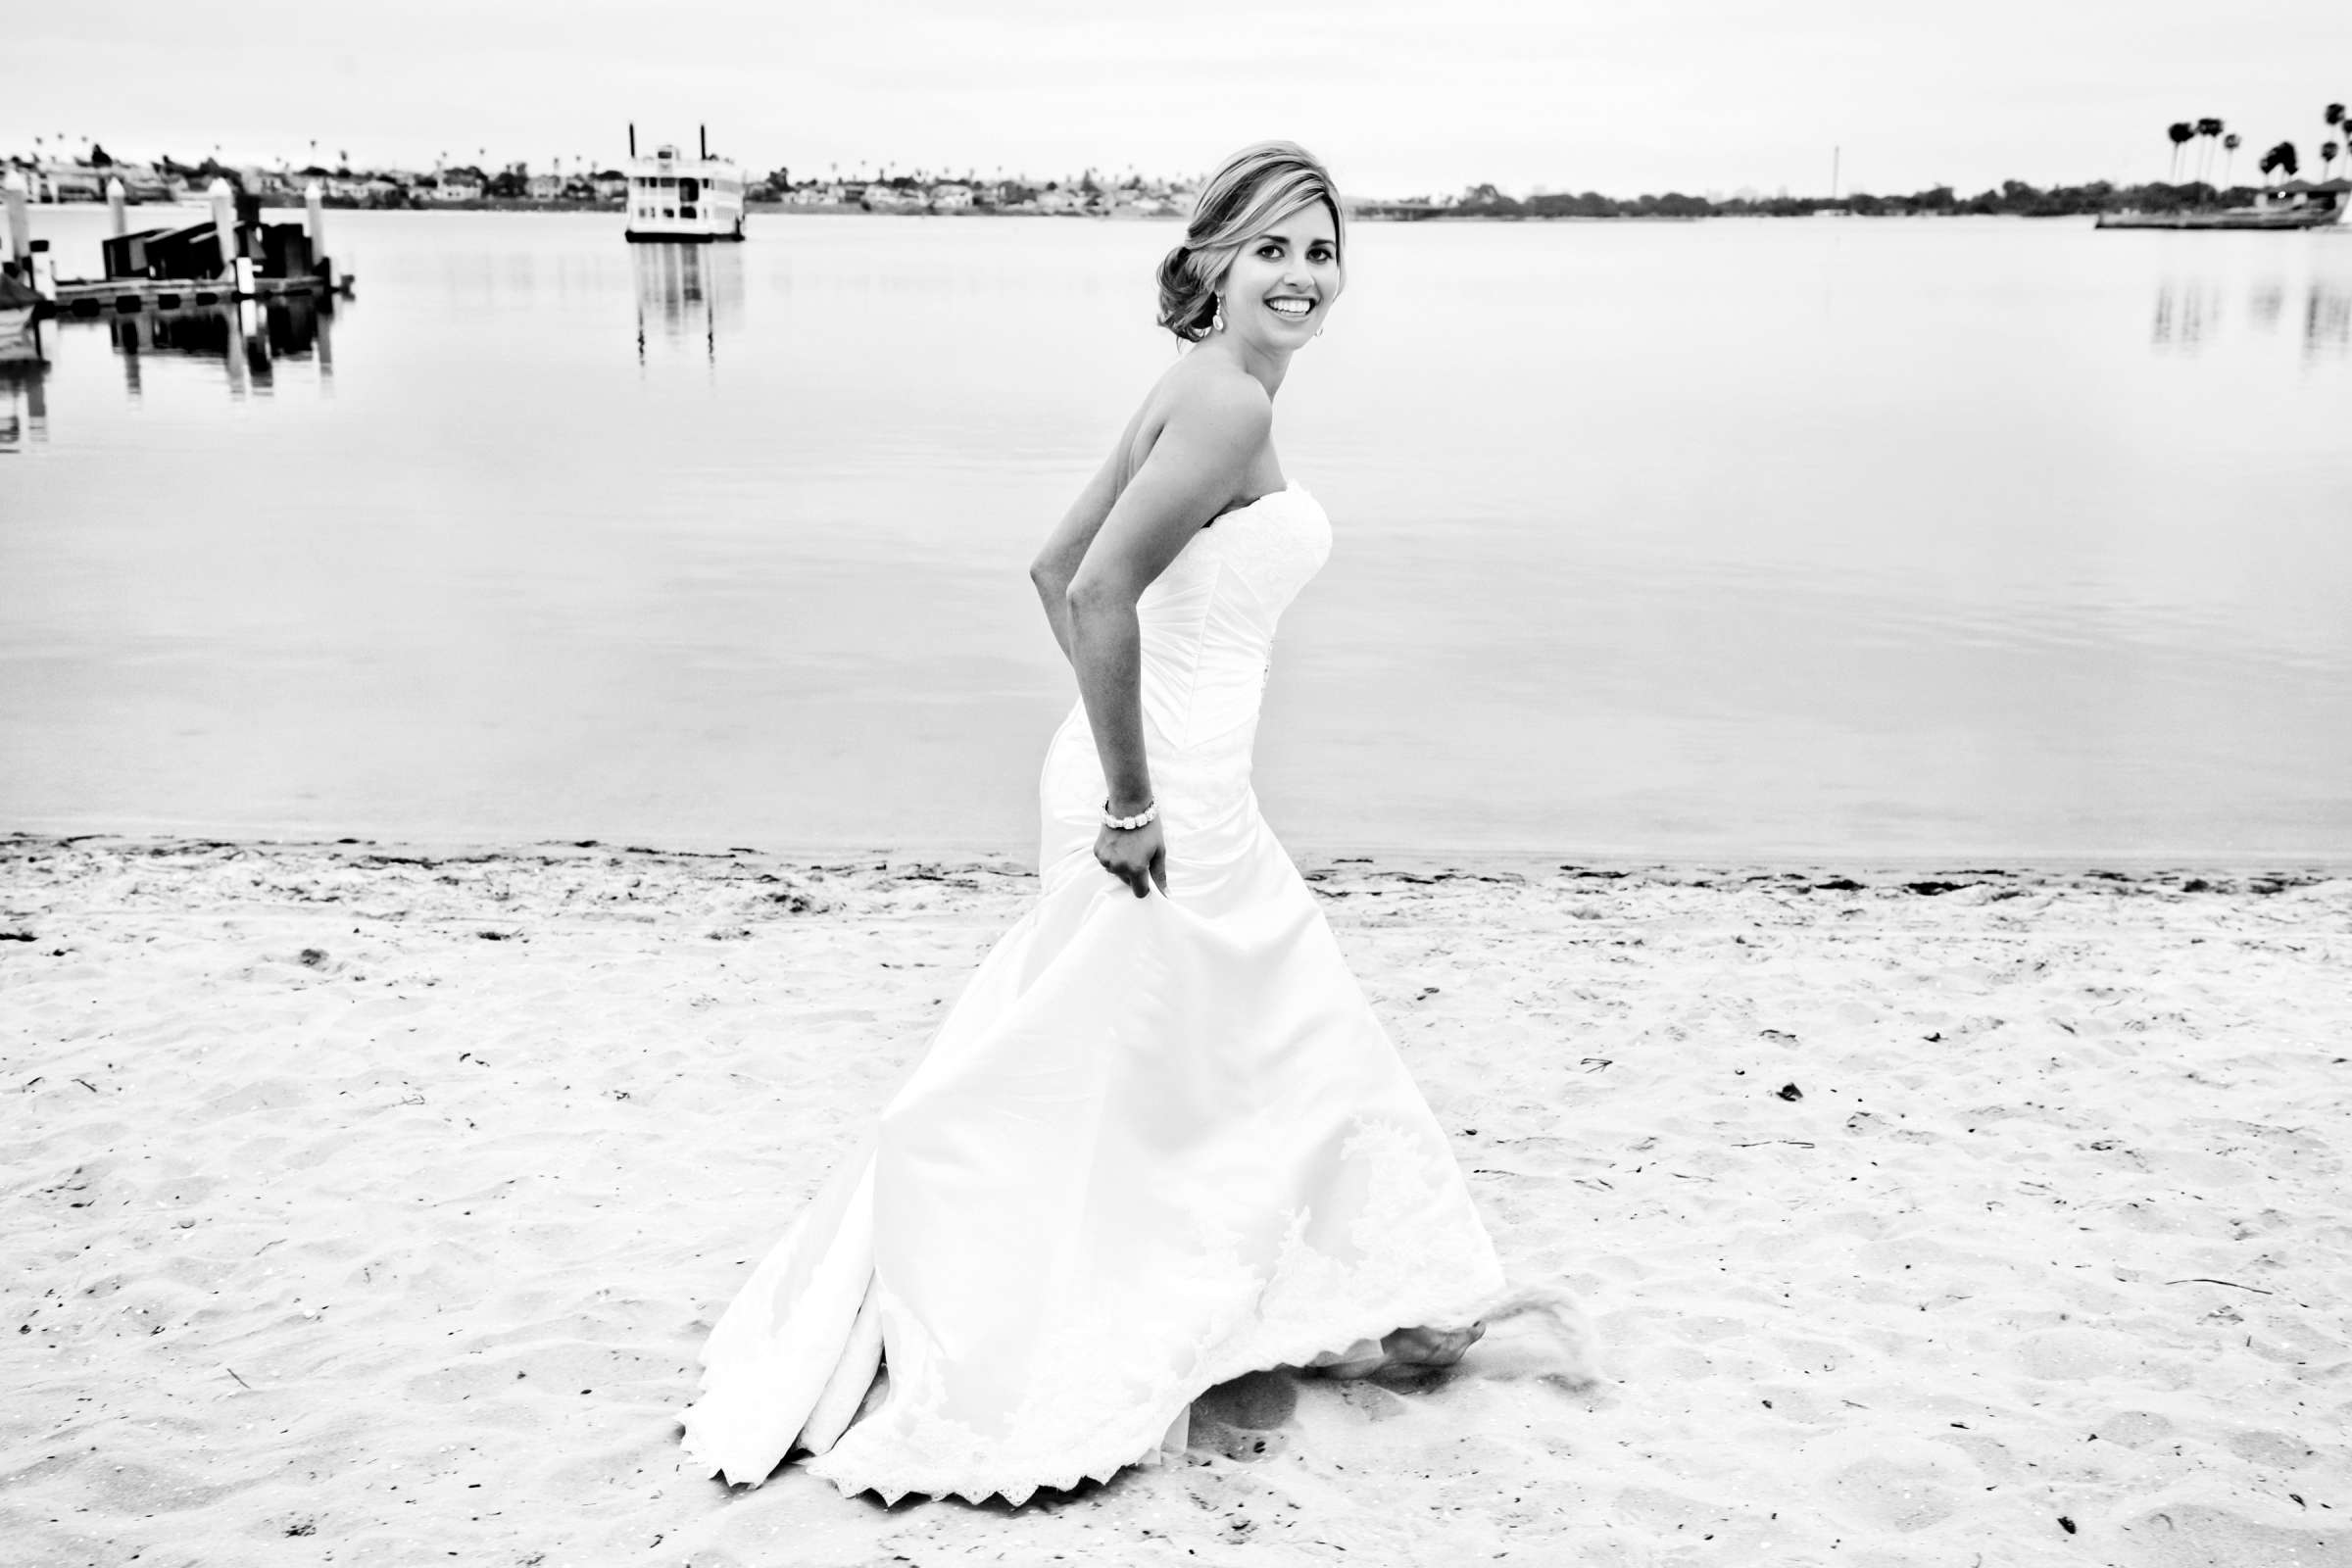 Catamaran Resort Wedding coordinated by A Diamond Celebration, Andrea and Mitch Wedding Photo #357865 by True Photography